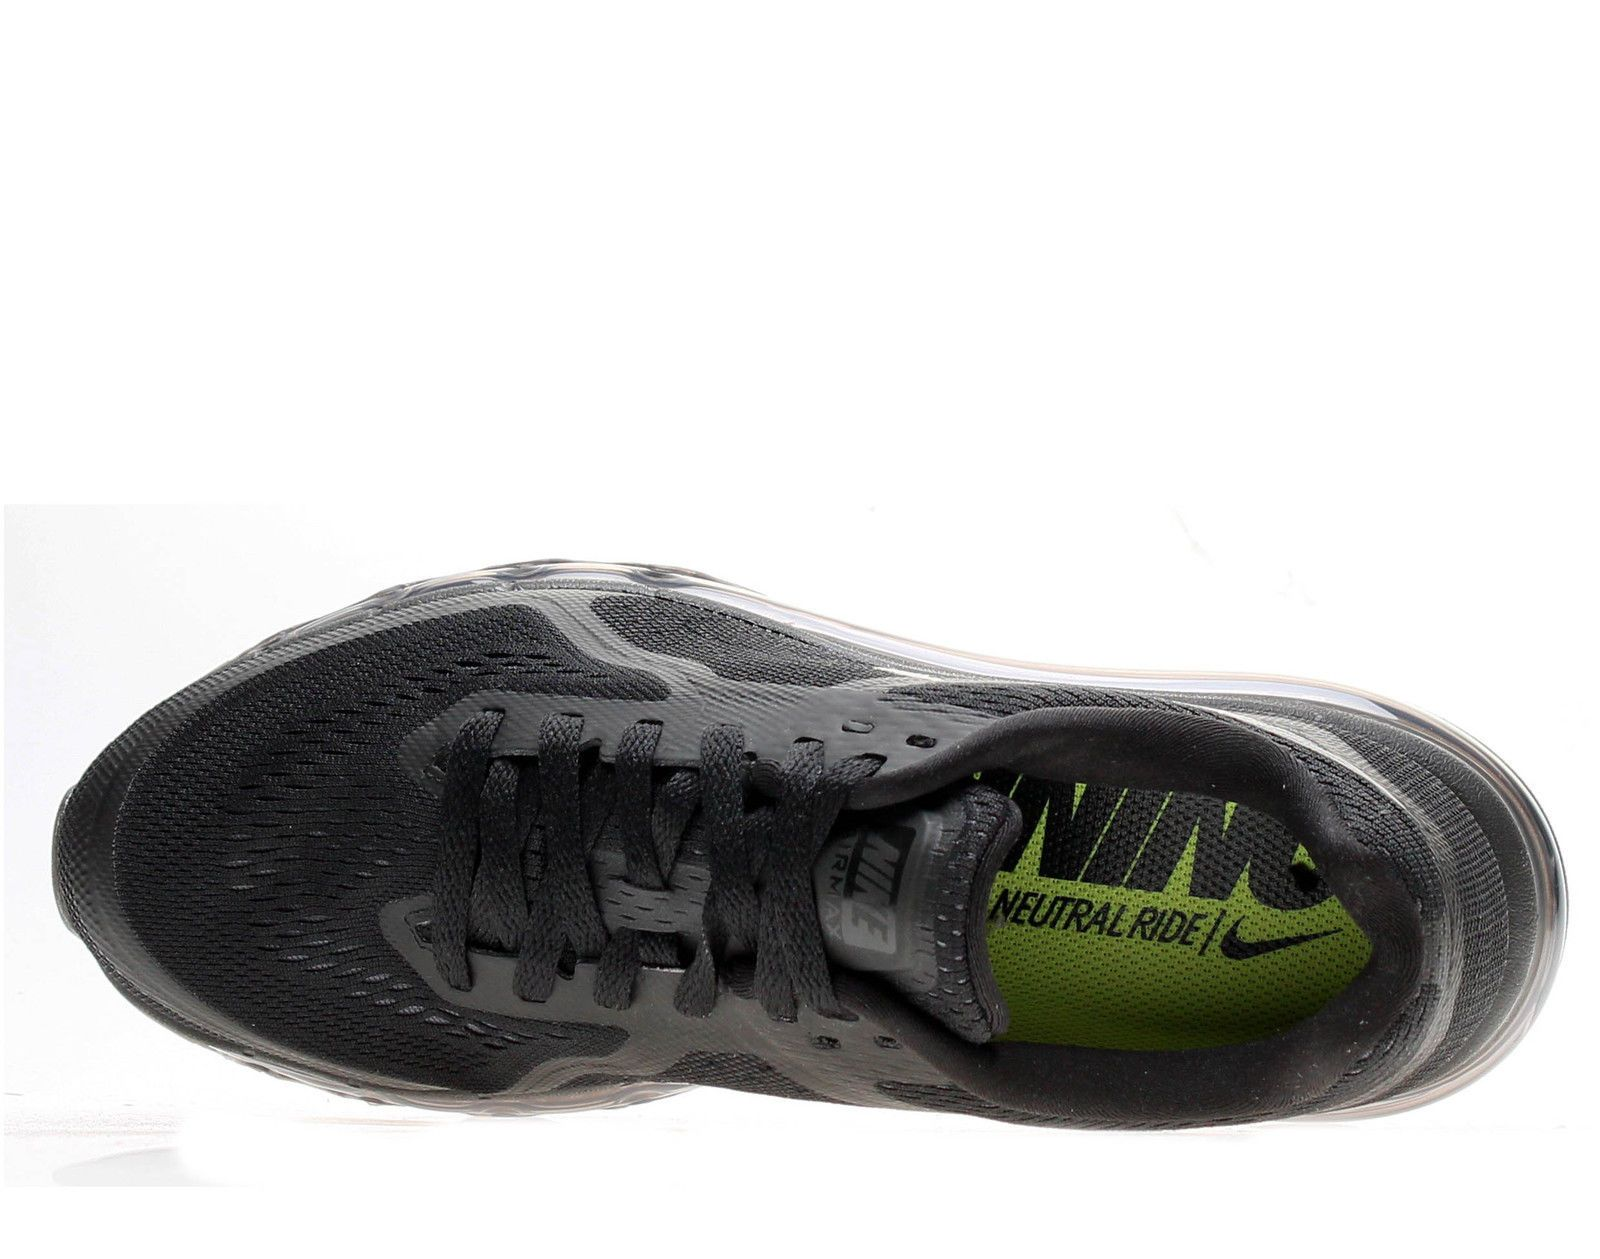 outlet store 09b51 274f0 tenis nike para mujer, tenis nike mujer blancos, tenis nike mujer negro,  zapatos